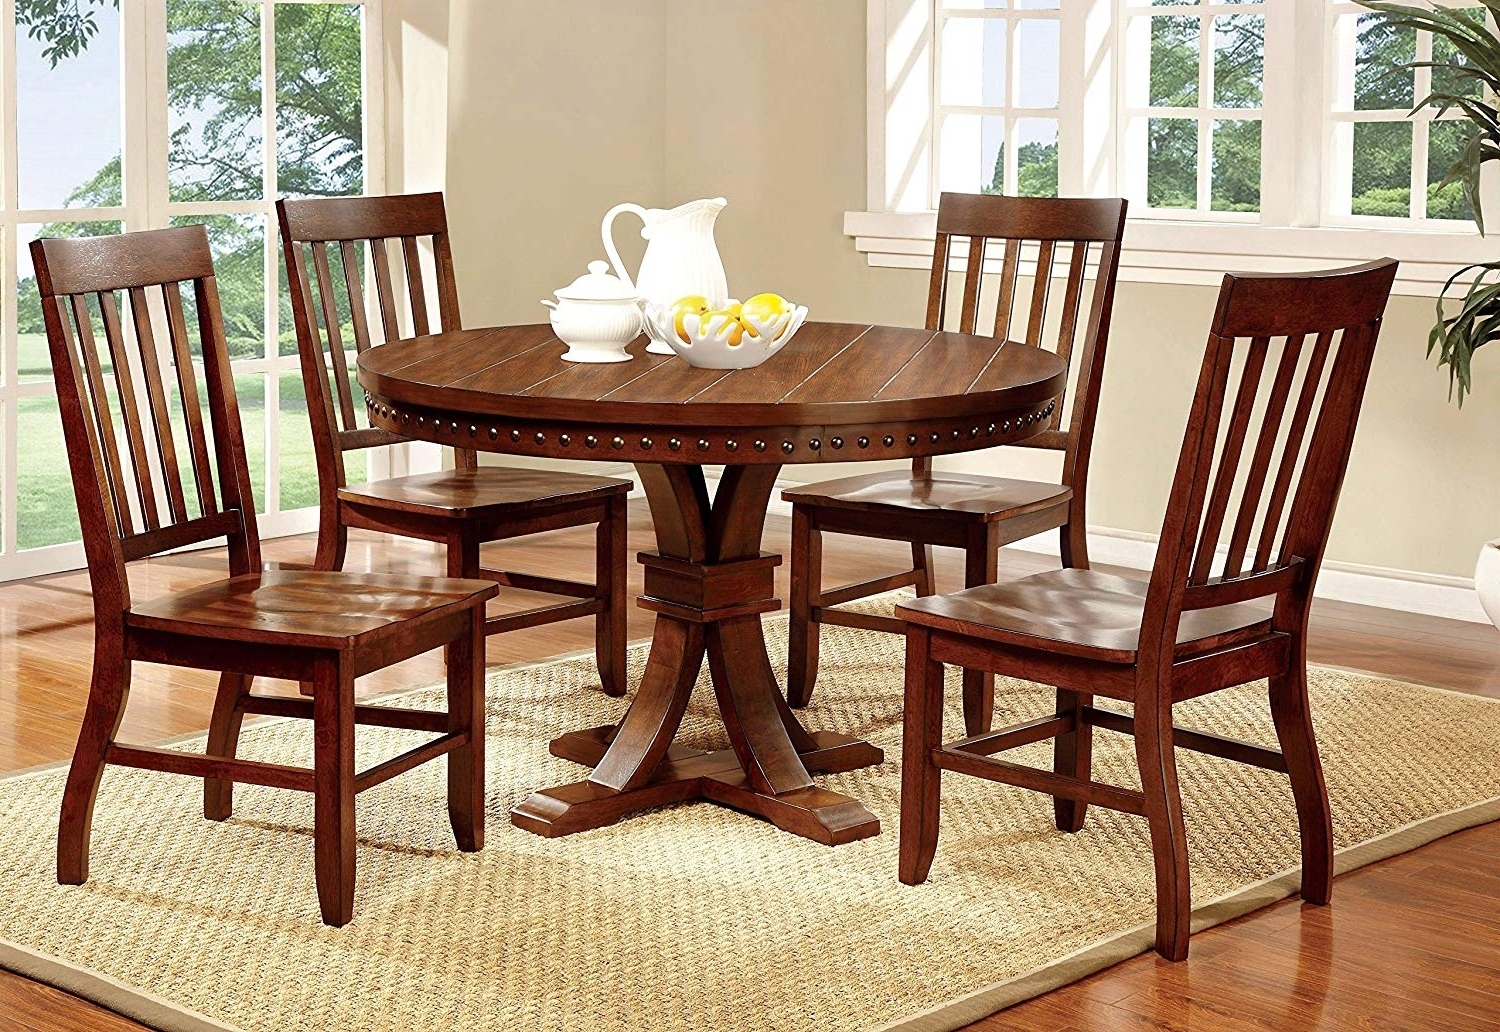 2017 Round Oak Dining Tables And Chairs Pertaining To Amazon – Furniture Of America Castile 5 Piece Transitional Round (View 1 of 25)